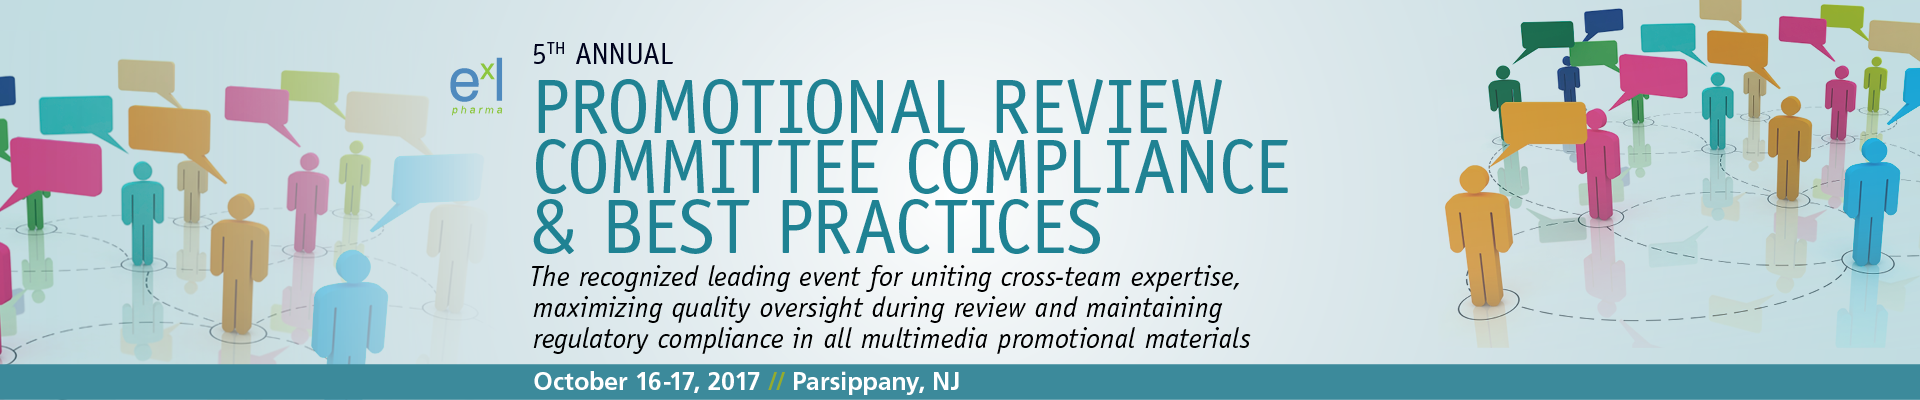 5th Promotional Review Committee Compliance & Best Practices